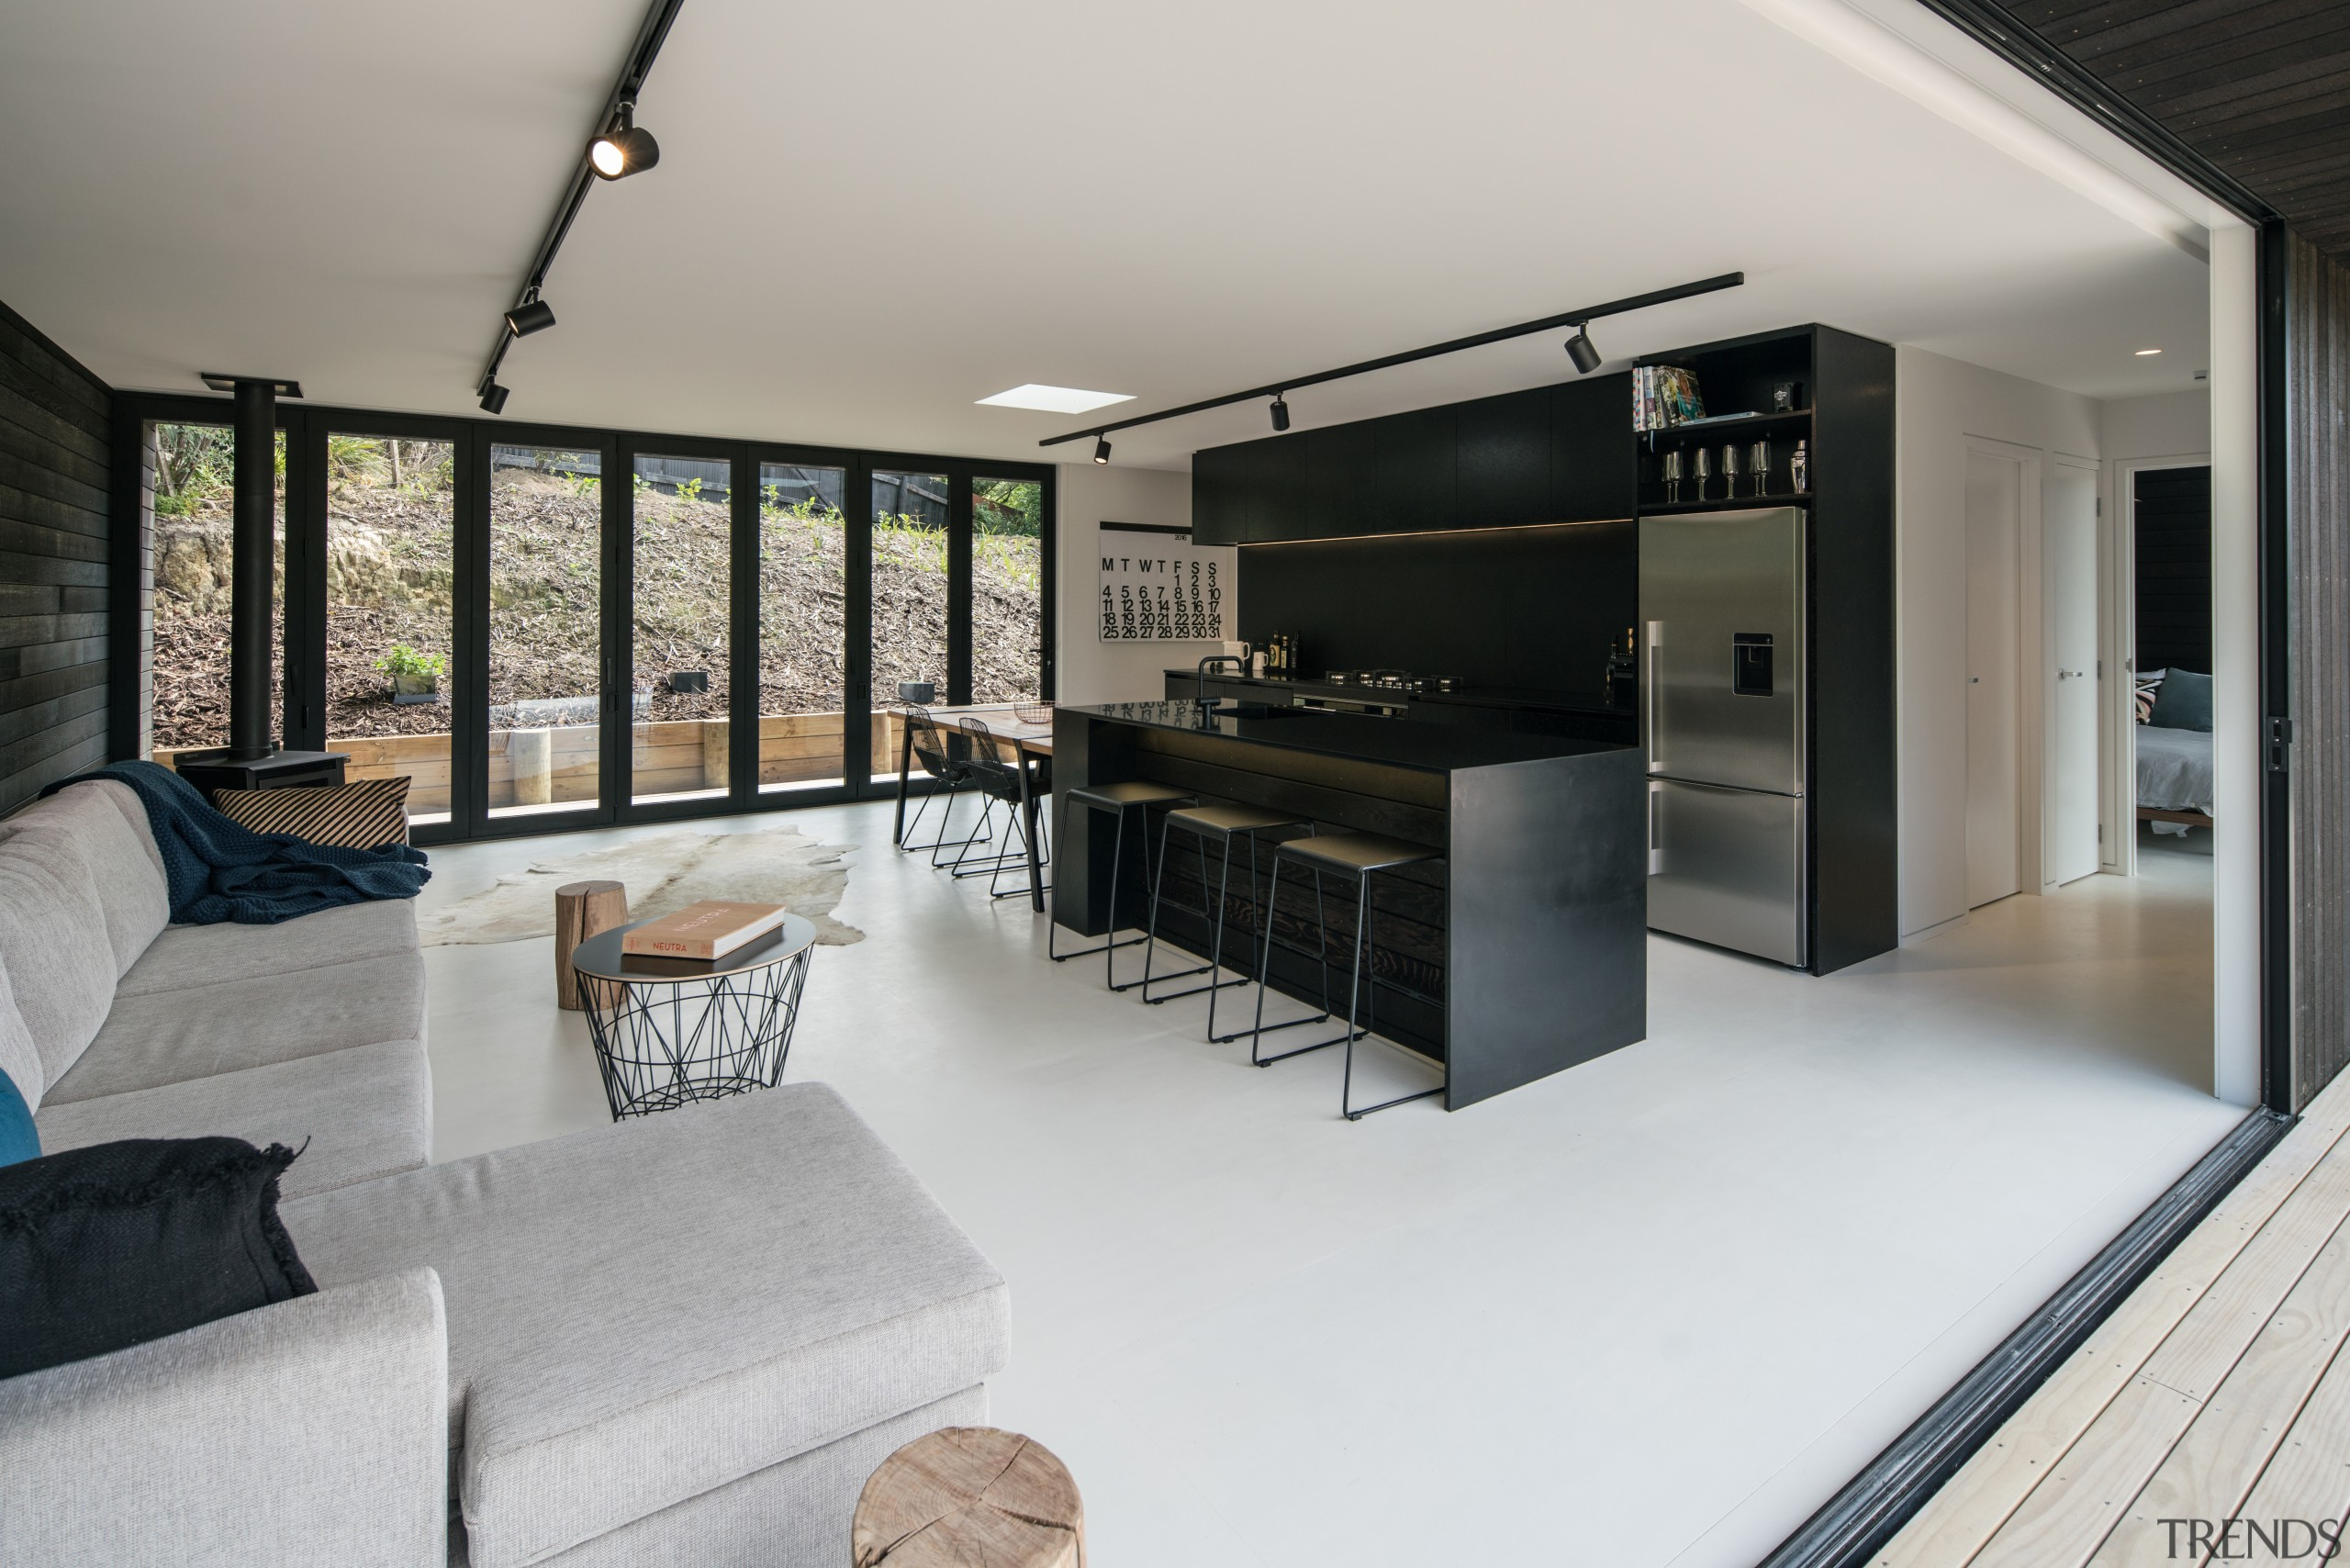 This kitchen looks modest in size but is architecture, house, interior design, living room, real estate, gray